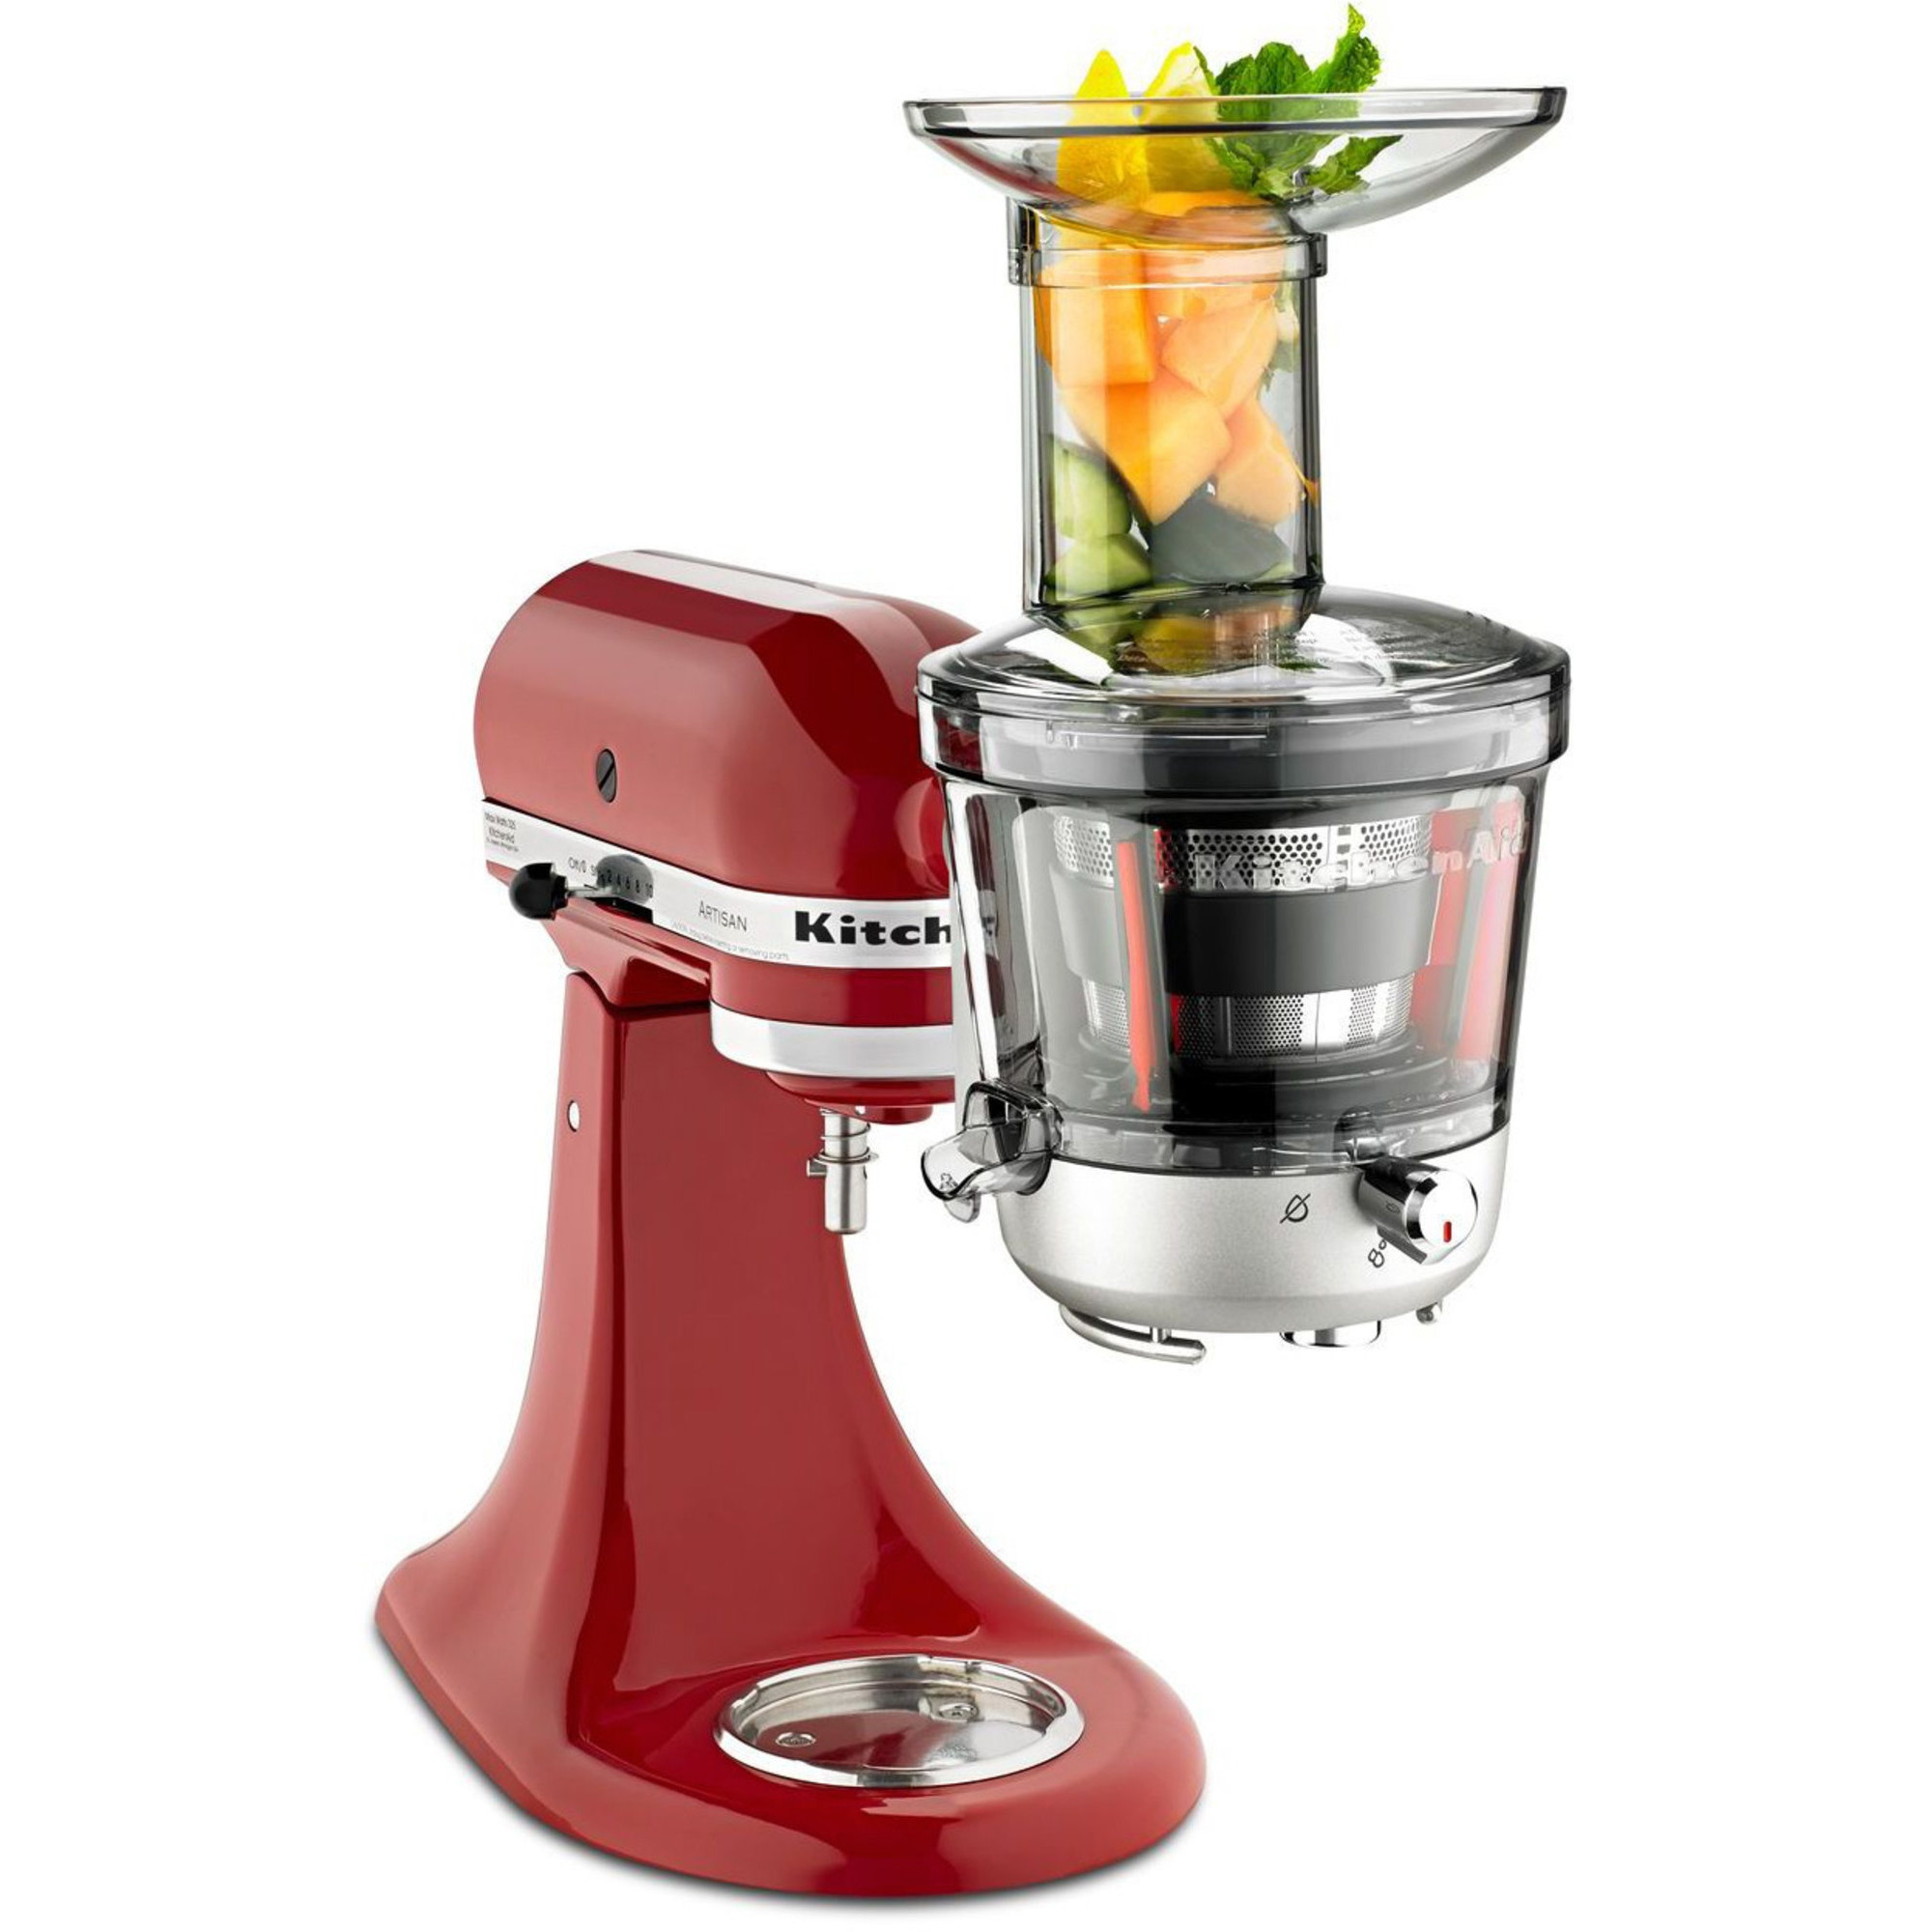 Kitchenaid Slow Juicer Elgiganten : SM1JA Slow Juicer fra KitchenAid Slow Juicer tilbehor til KitchenAid